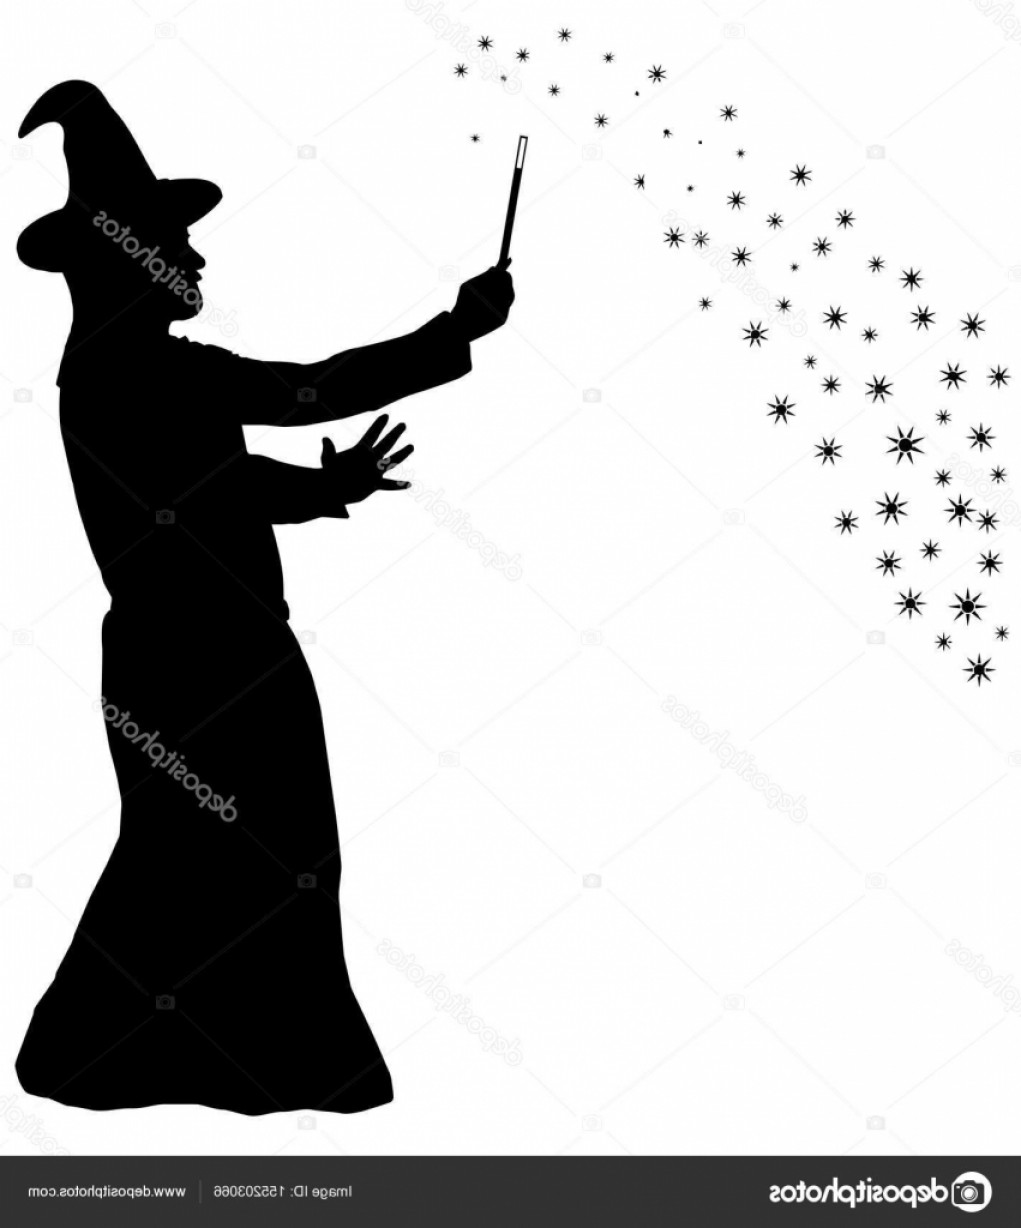 Wizard Silhouette Vector: Stock Illustration Silhouette Of Bearded Wizard In